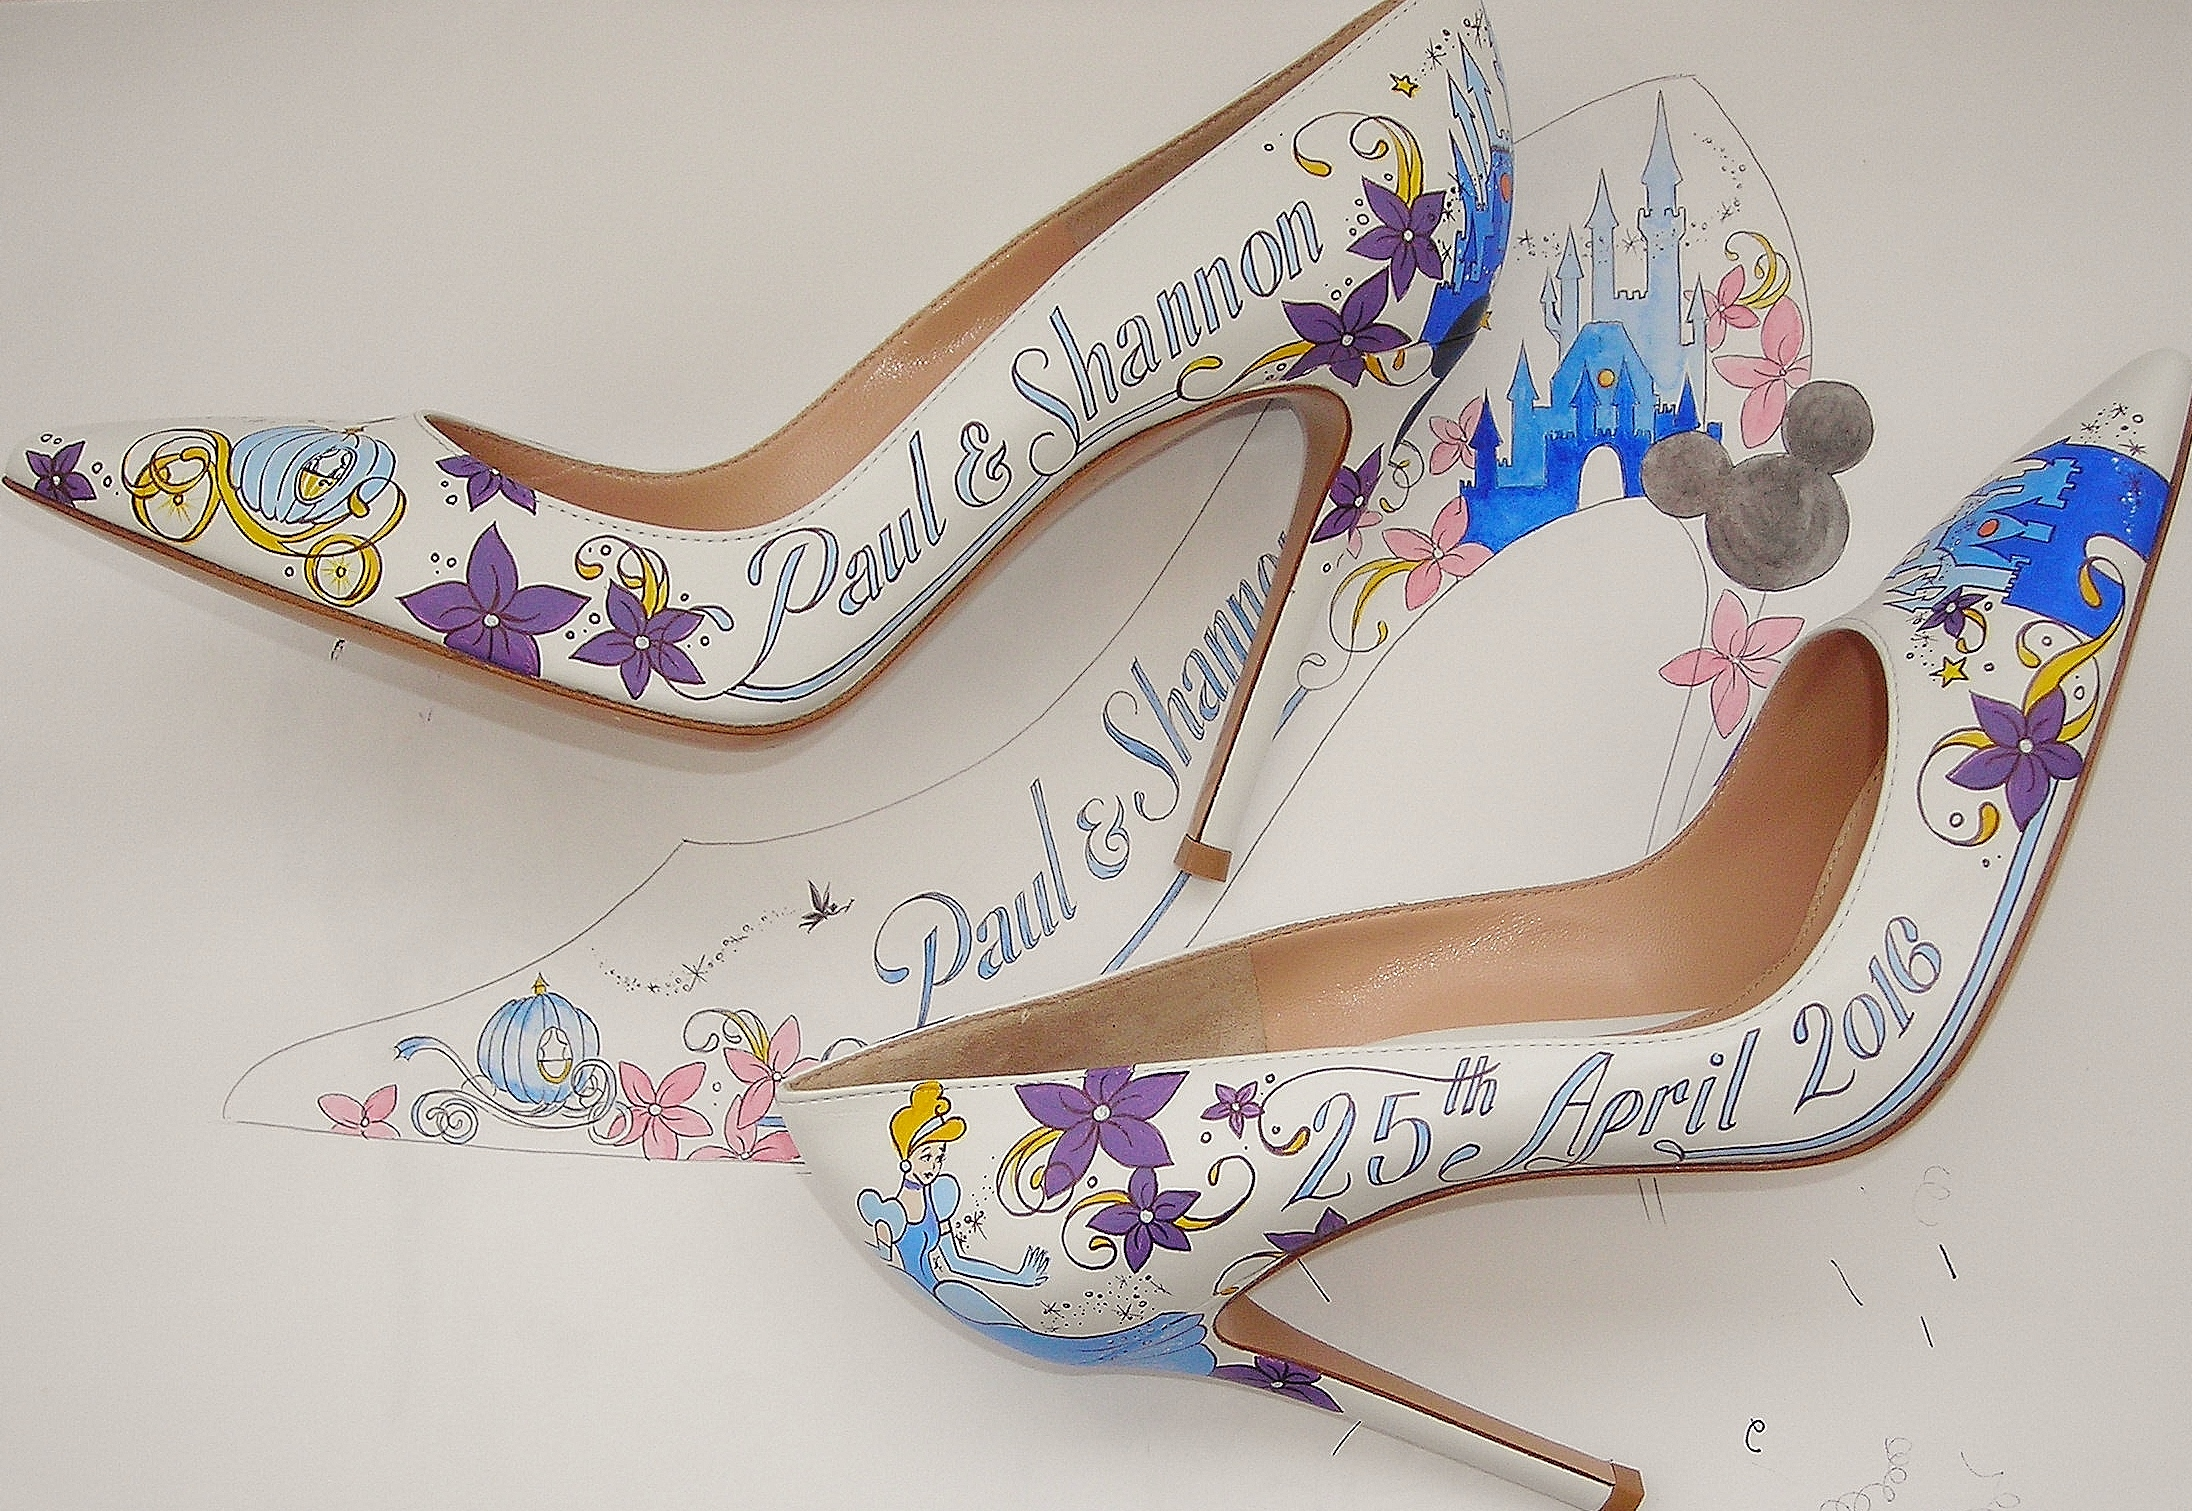 If you look closely you can see the pumpkin hand painted on the front of the wedding shoes